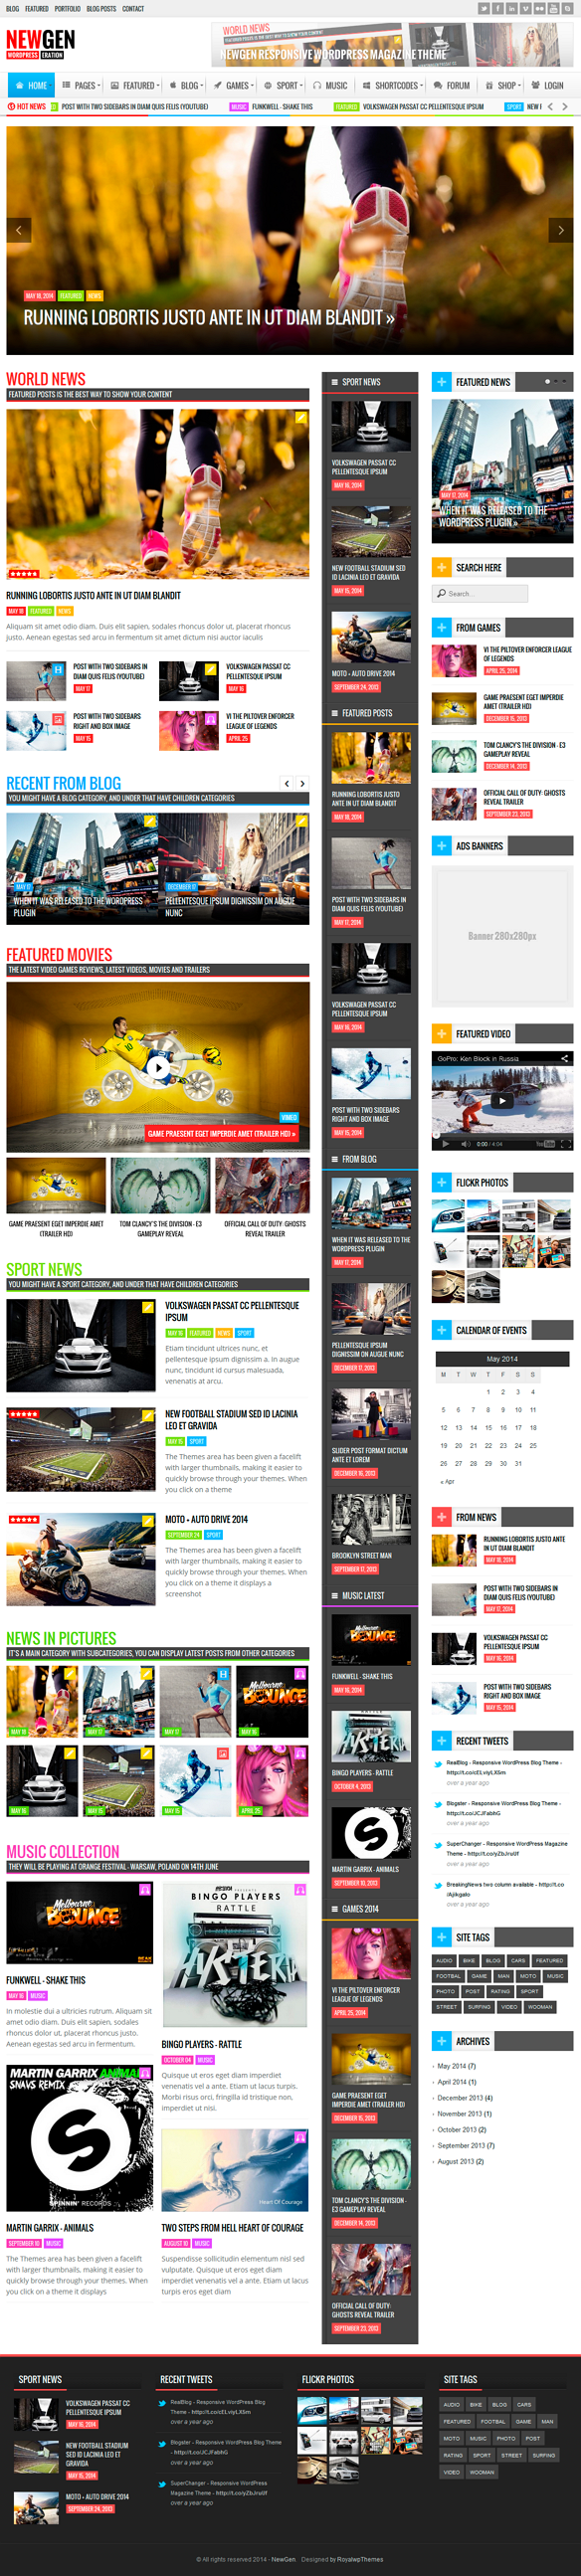 Newgen is a Responsive News Magazine WordPress Theme.